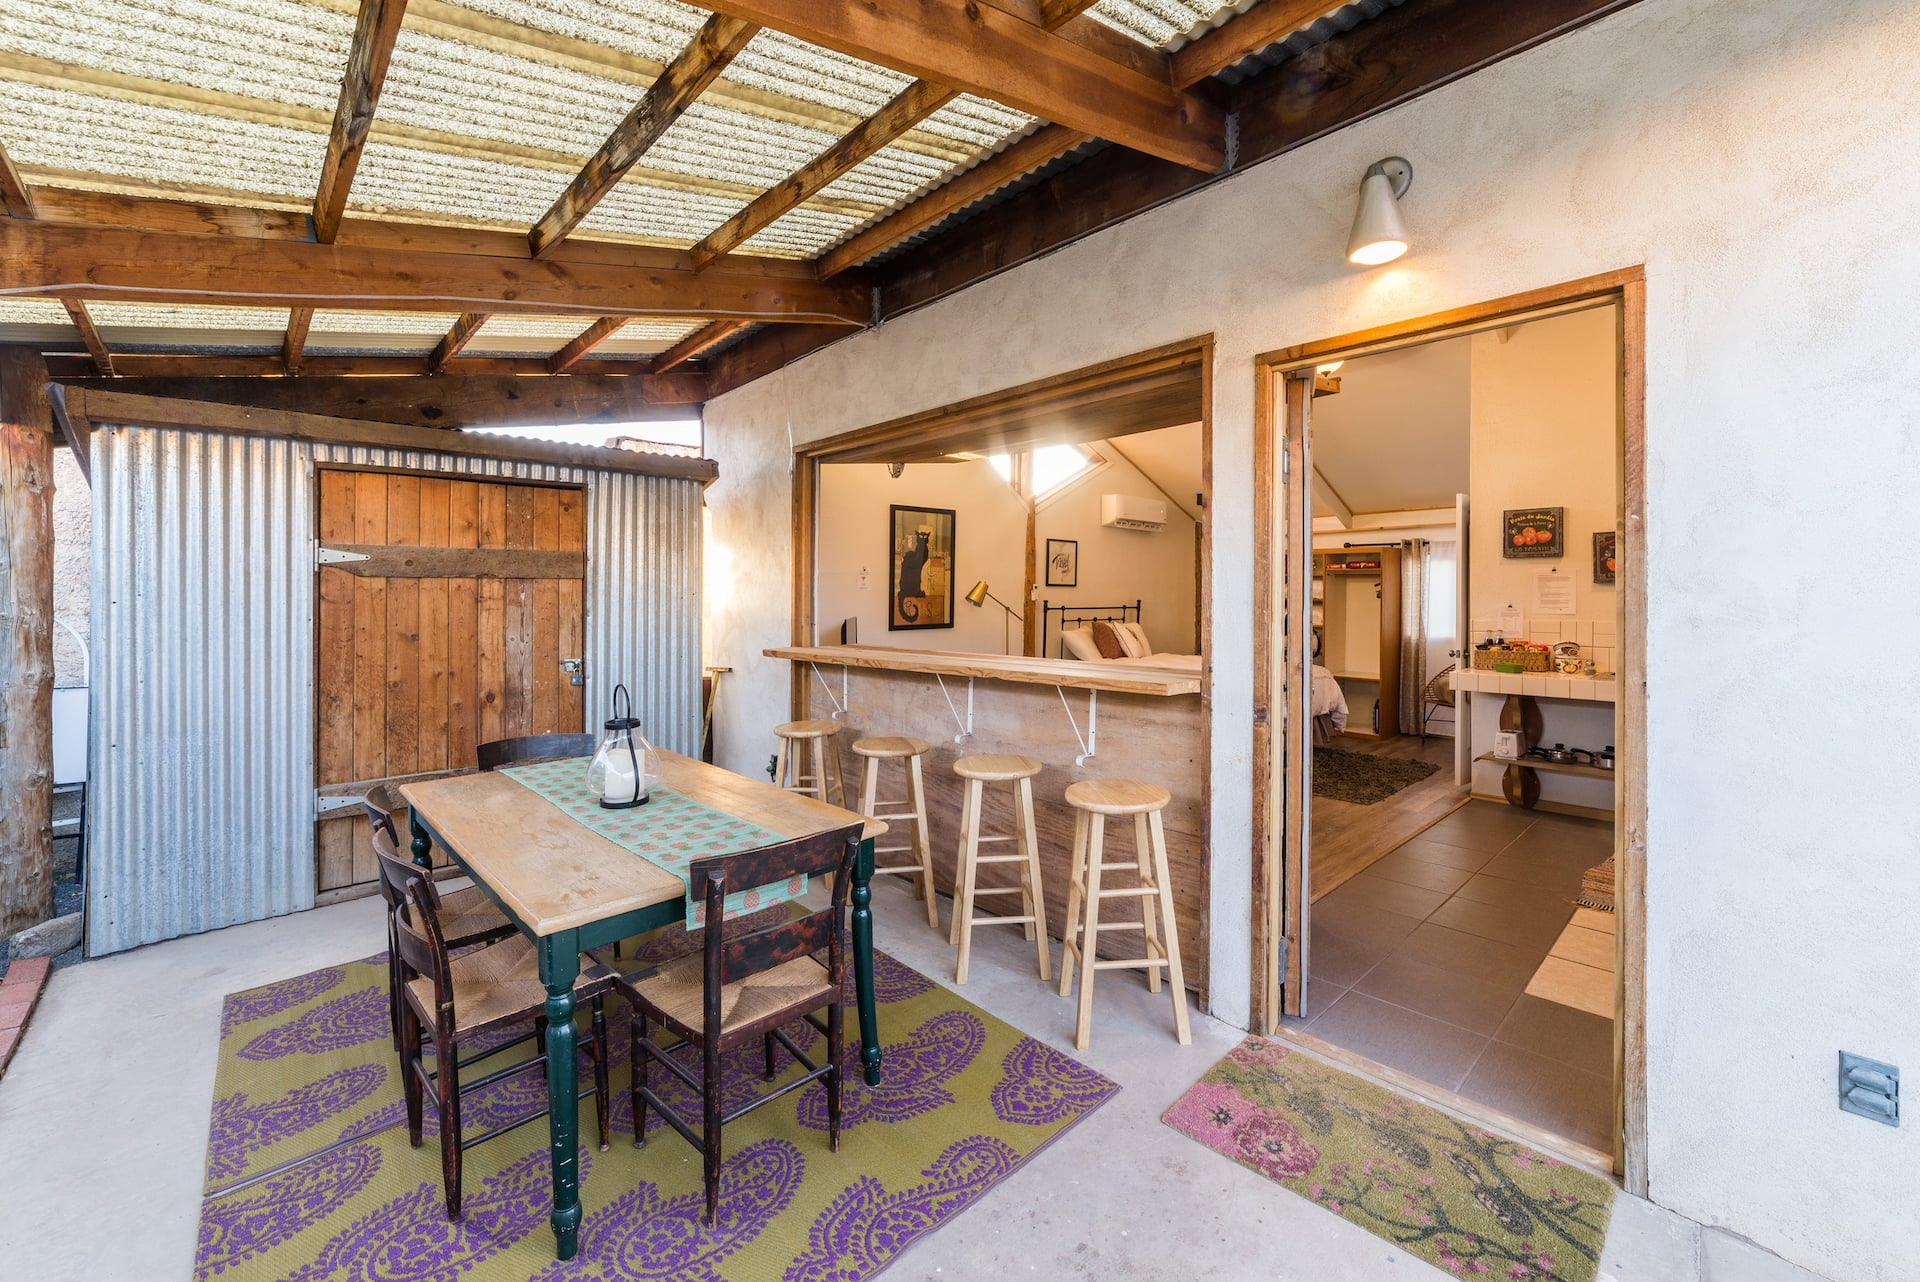 the Creative Casita open air living Airbnb in New Mexico